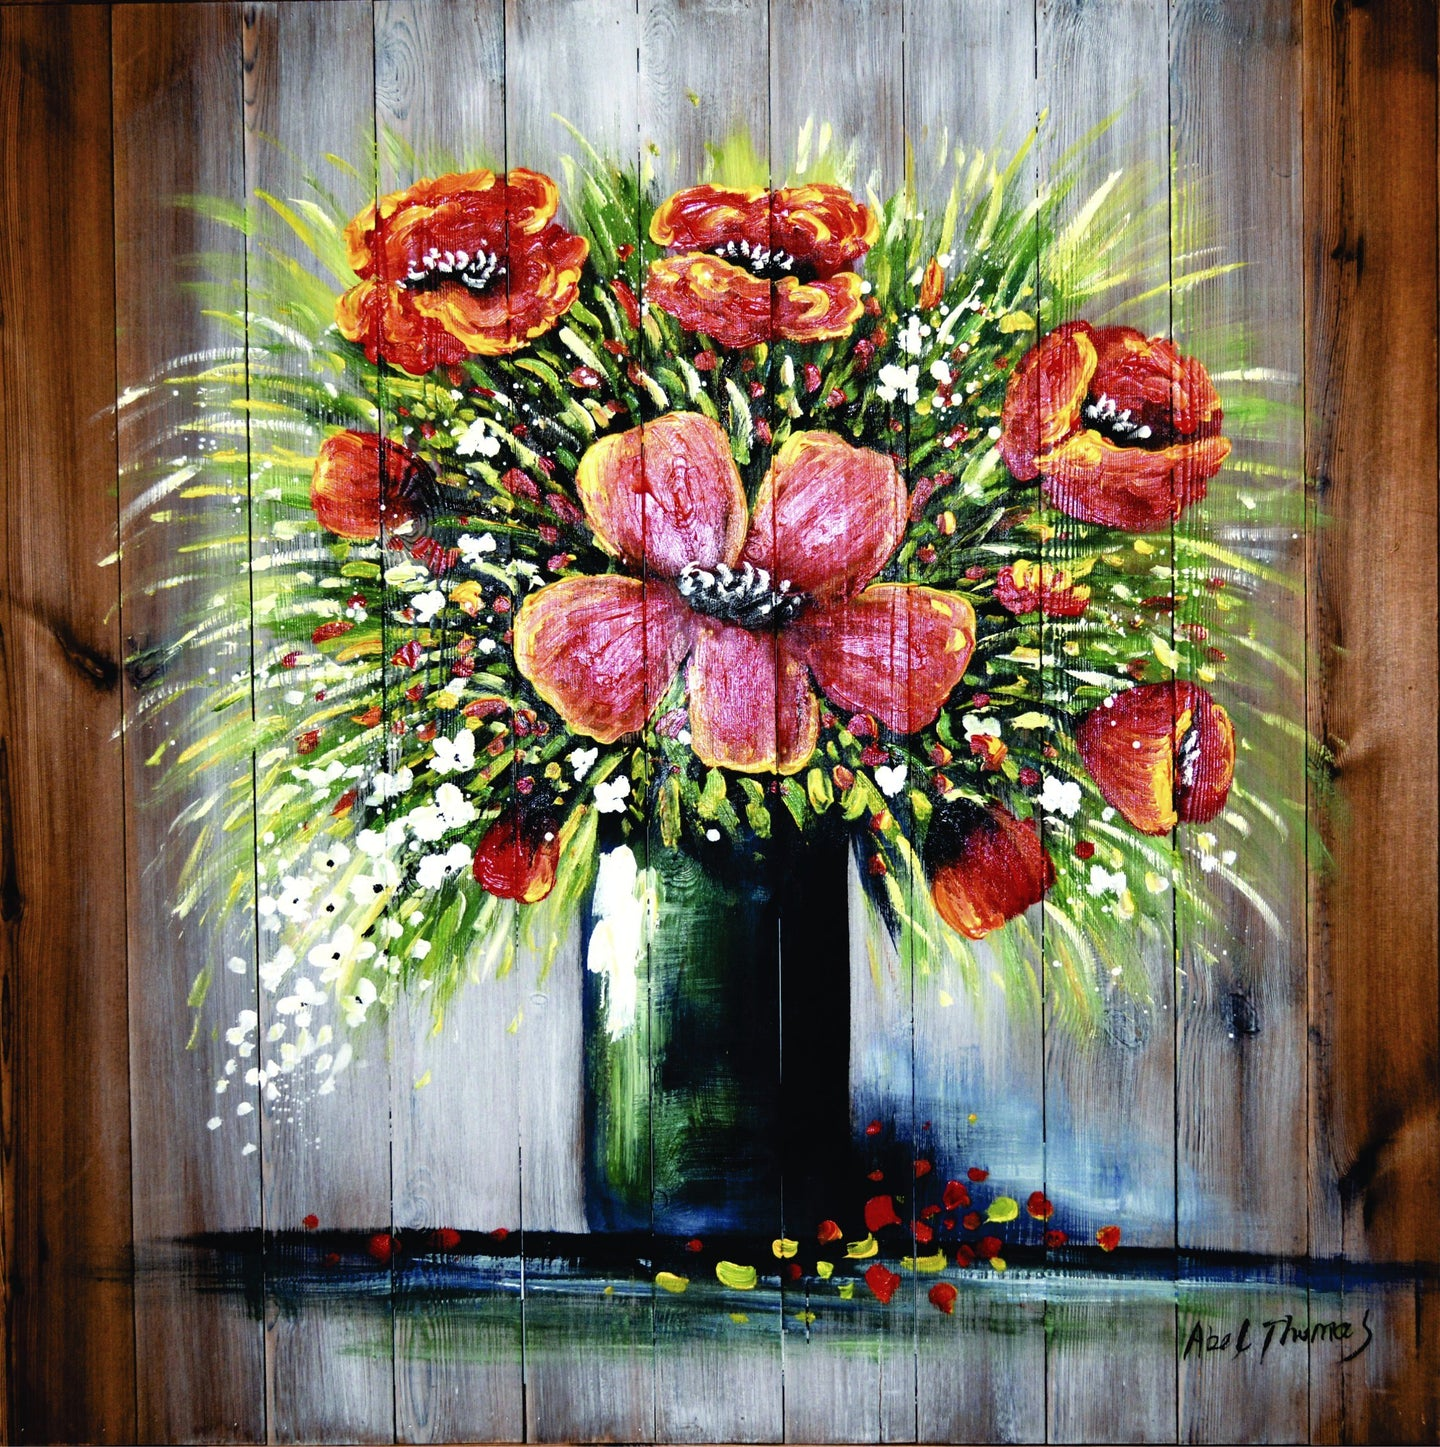 olivias_loft | affordable_art | vancouver_artist | whiterock_artist | seattle_artist | floral_painting | interior_design | home_statging | wall_art | renovation_ideas | decoration_ideas | BC_artist | canadian_art